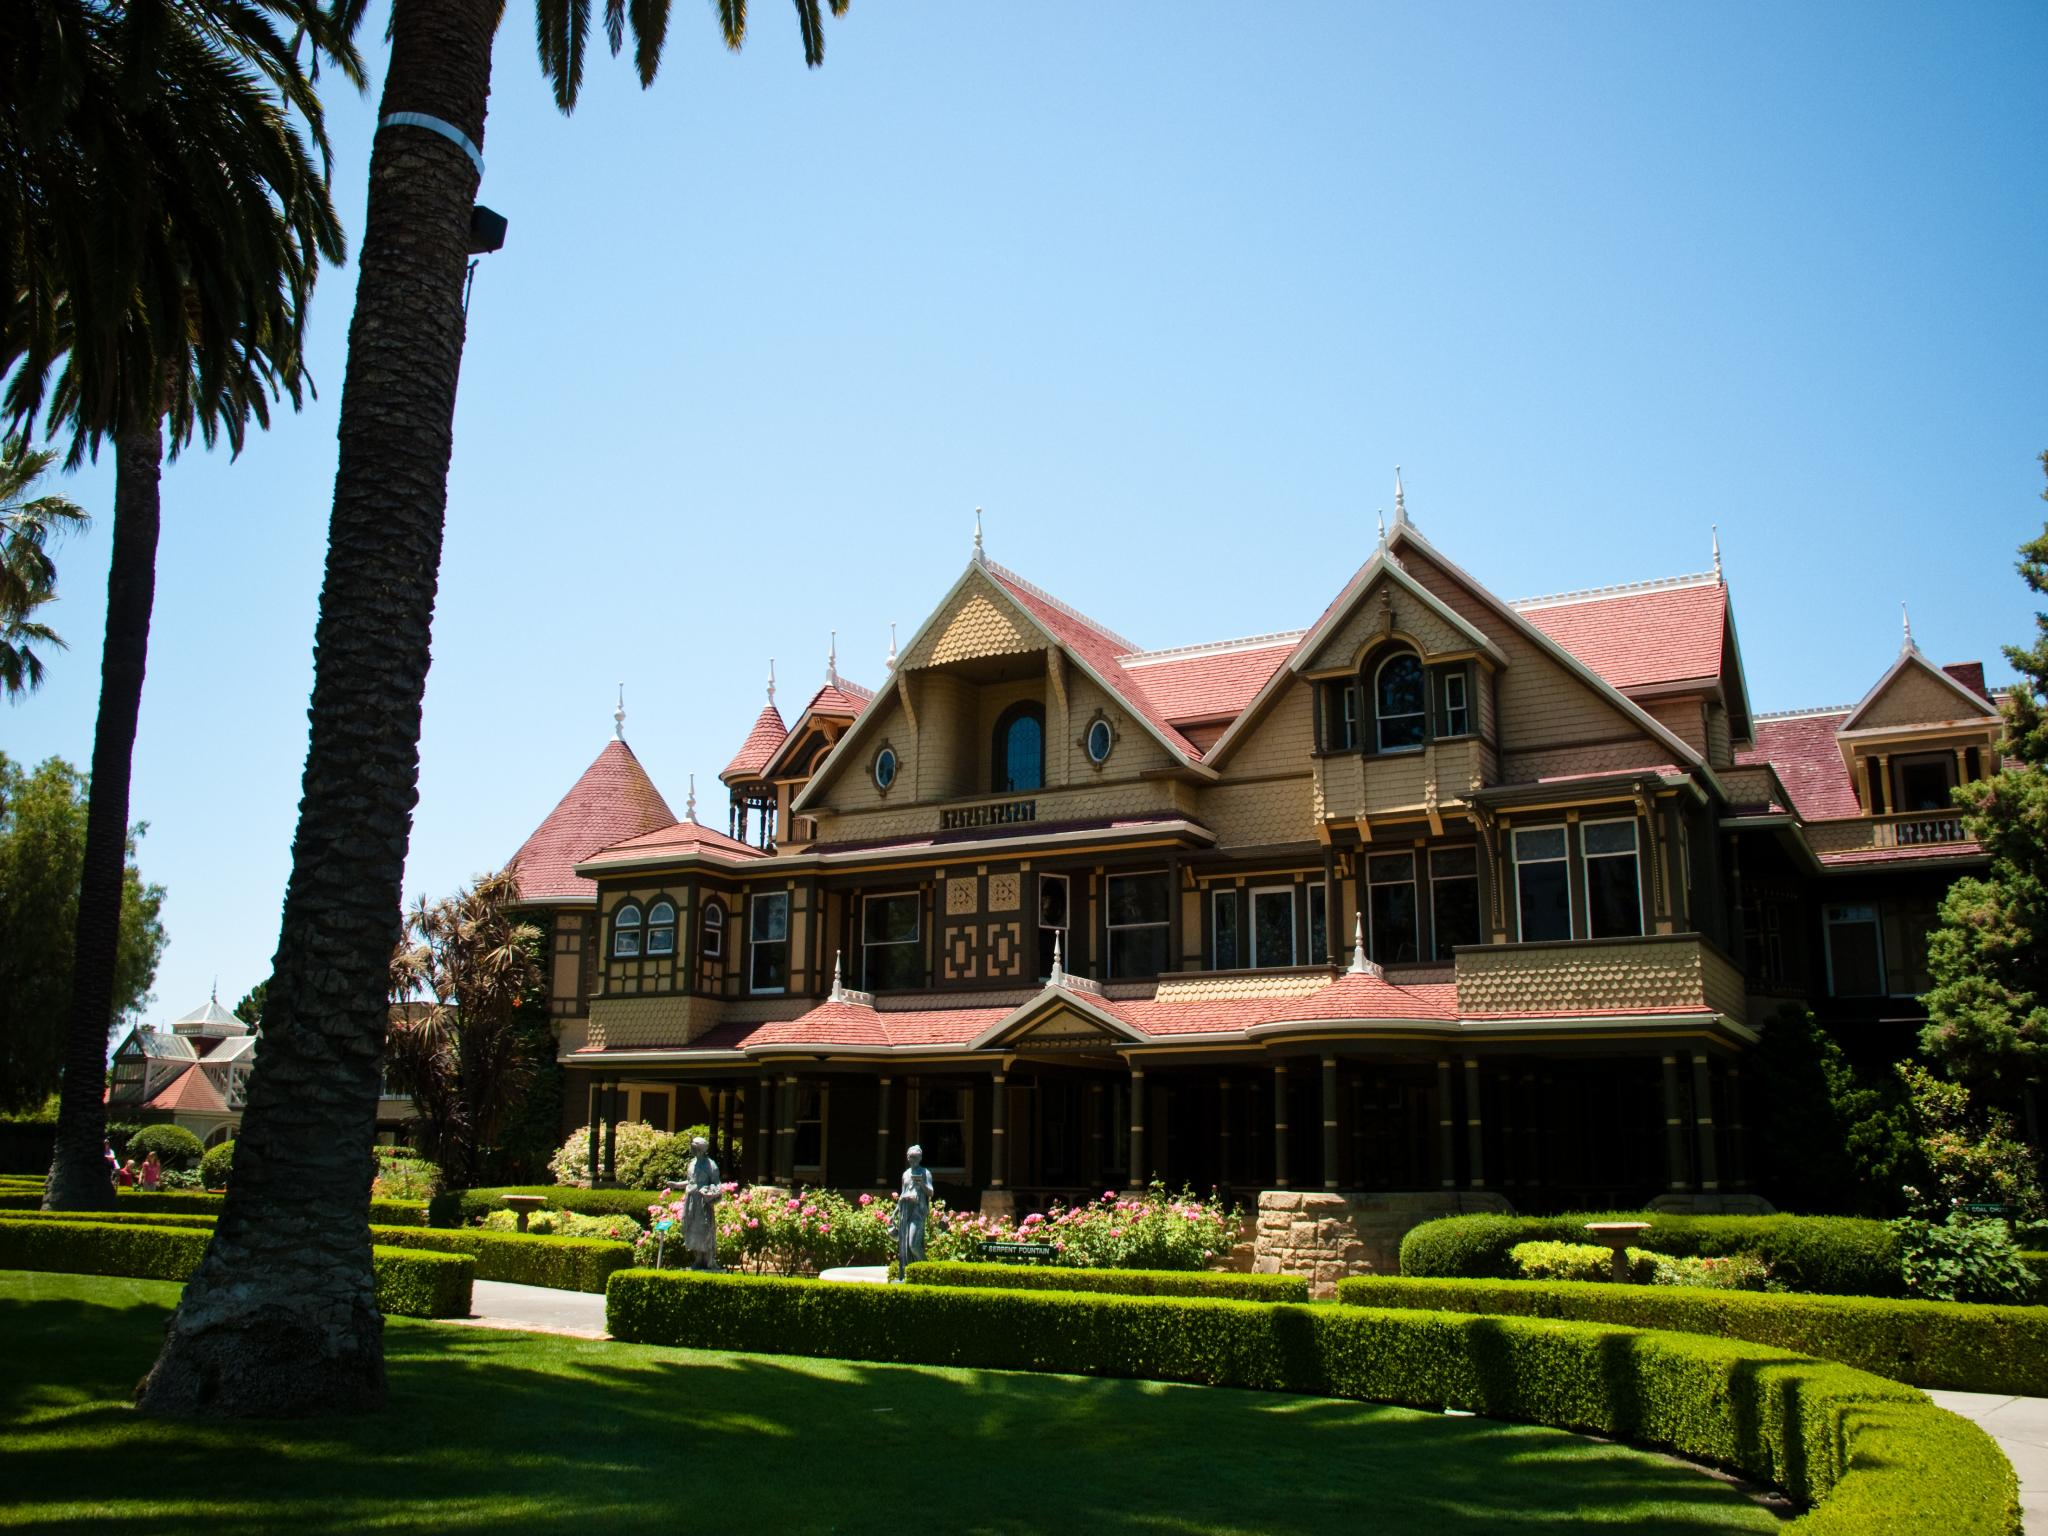 Winchester mystery house flickr photo sharing for The winchester house